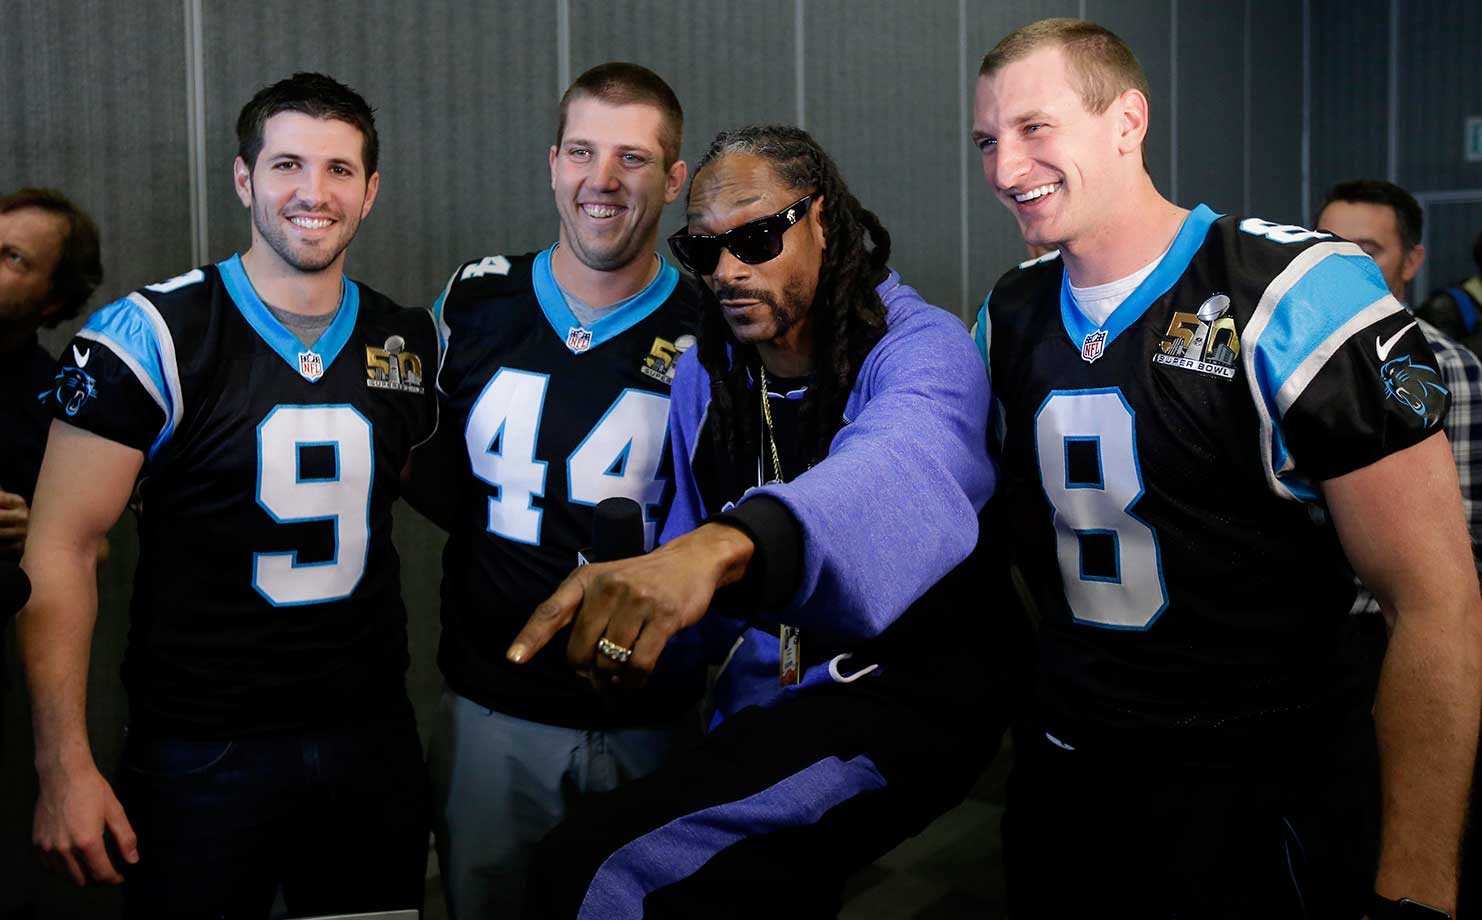 Recording artist Snoop Dogg poses with Carolina Panthers' Graham Gano (9), J.J. Jansen (44) and Brad Nortman in San Jose.